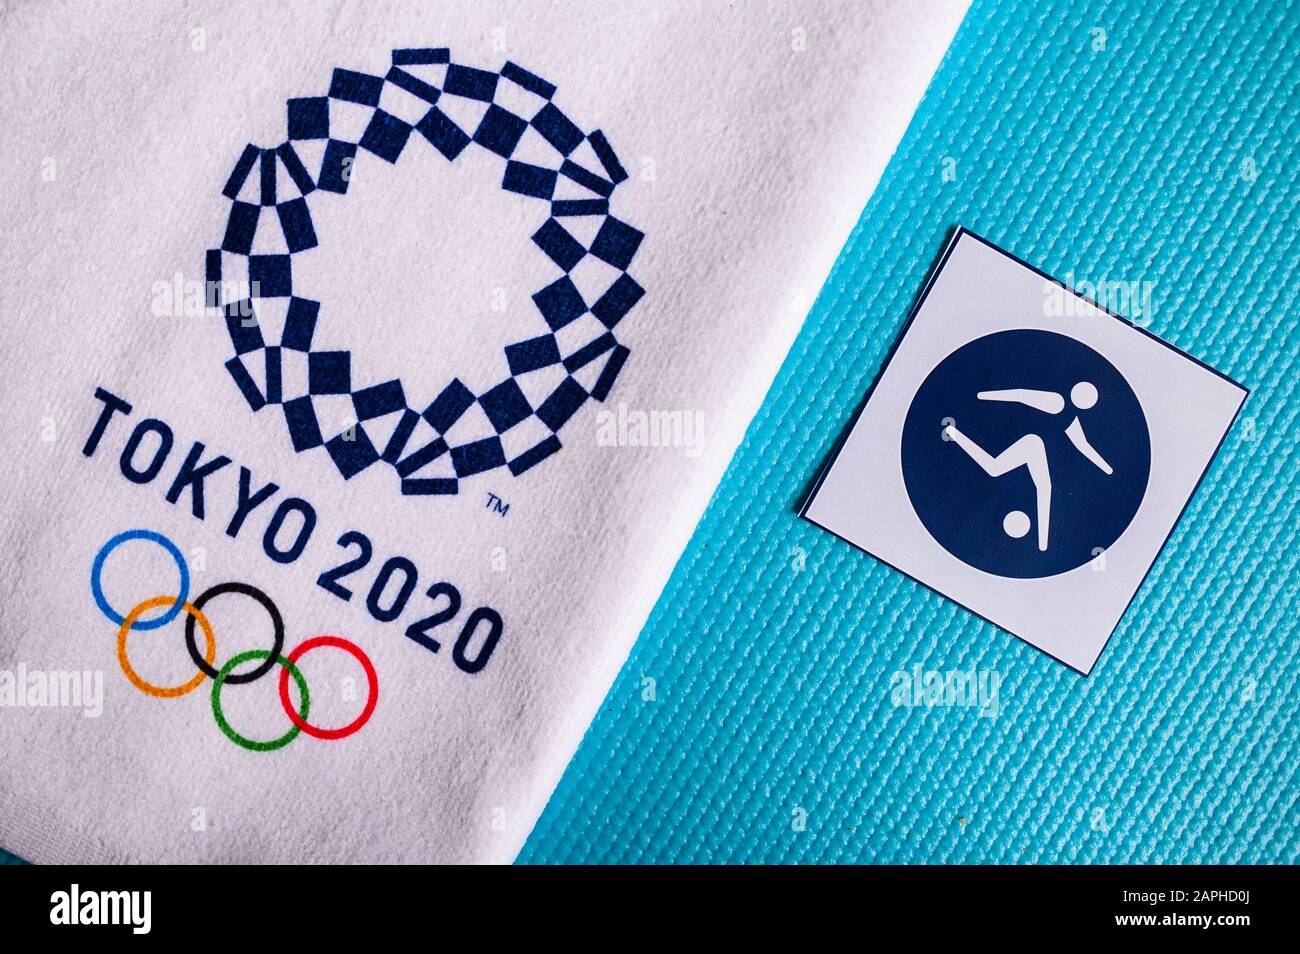 Tokyo Japan January 20 2020 Football Pictogram For Summer Olympic Game Tokyo 2020 Stock Photo Alamy